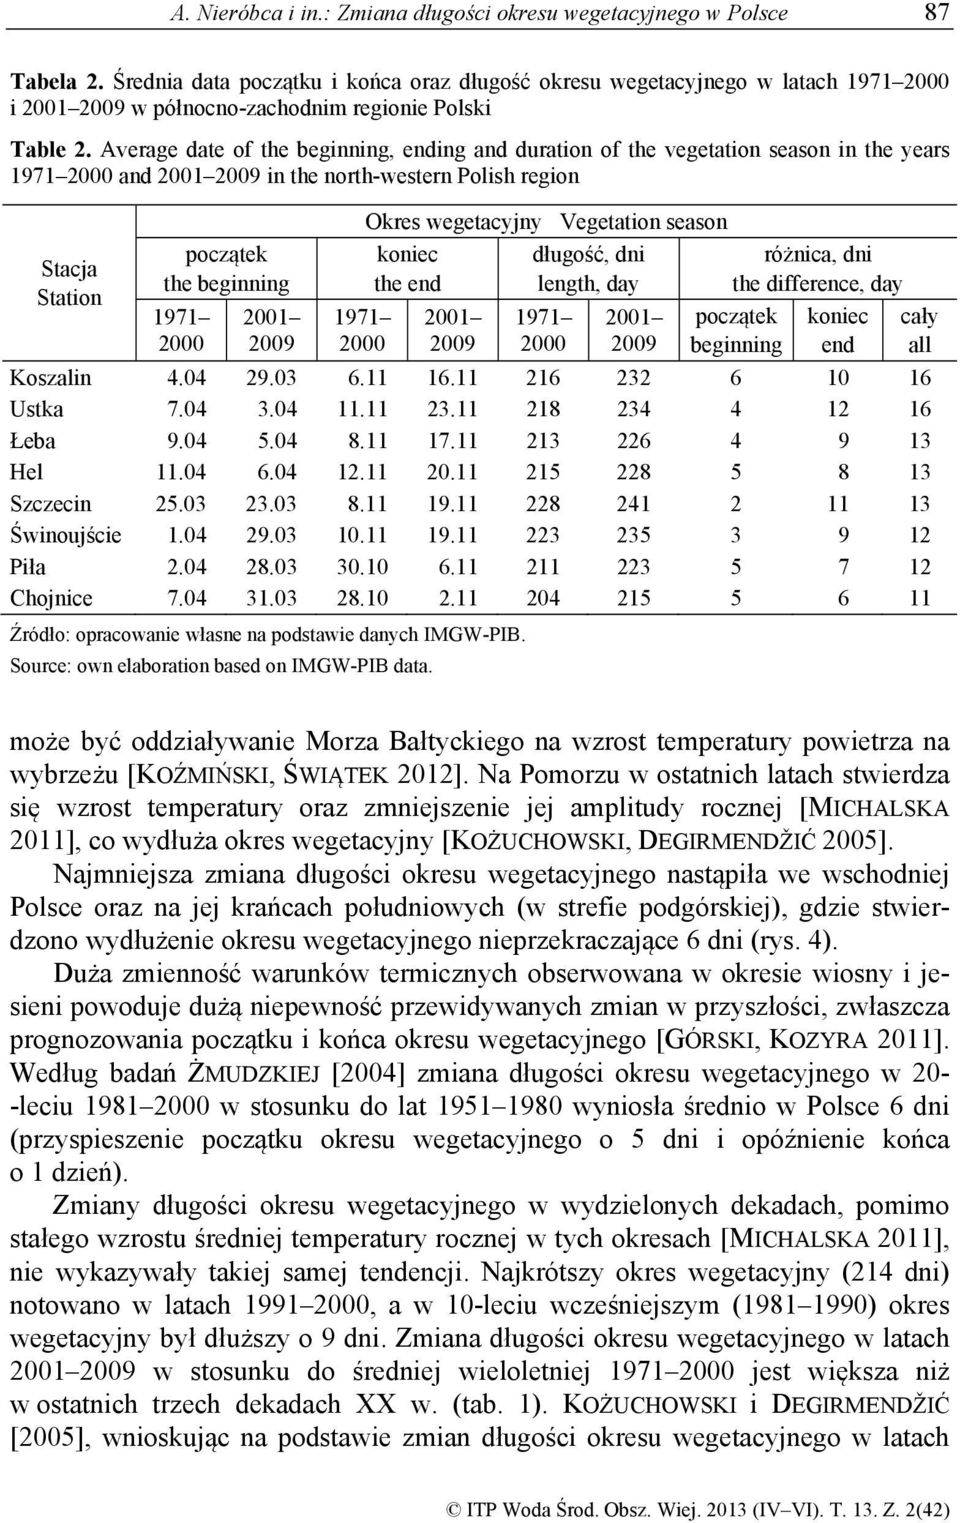 Average date of the beginning, ending and duration of the vegetation season in the years 1971 2000 and 2001 2009 in the north-western Polish region Stacja Station początek the beginning 1971 2000